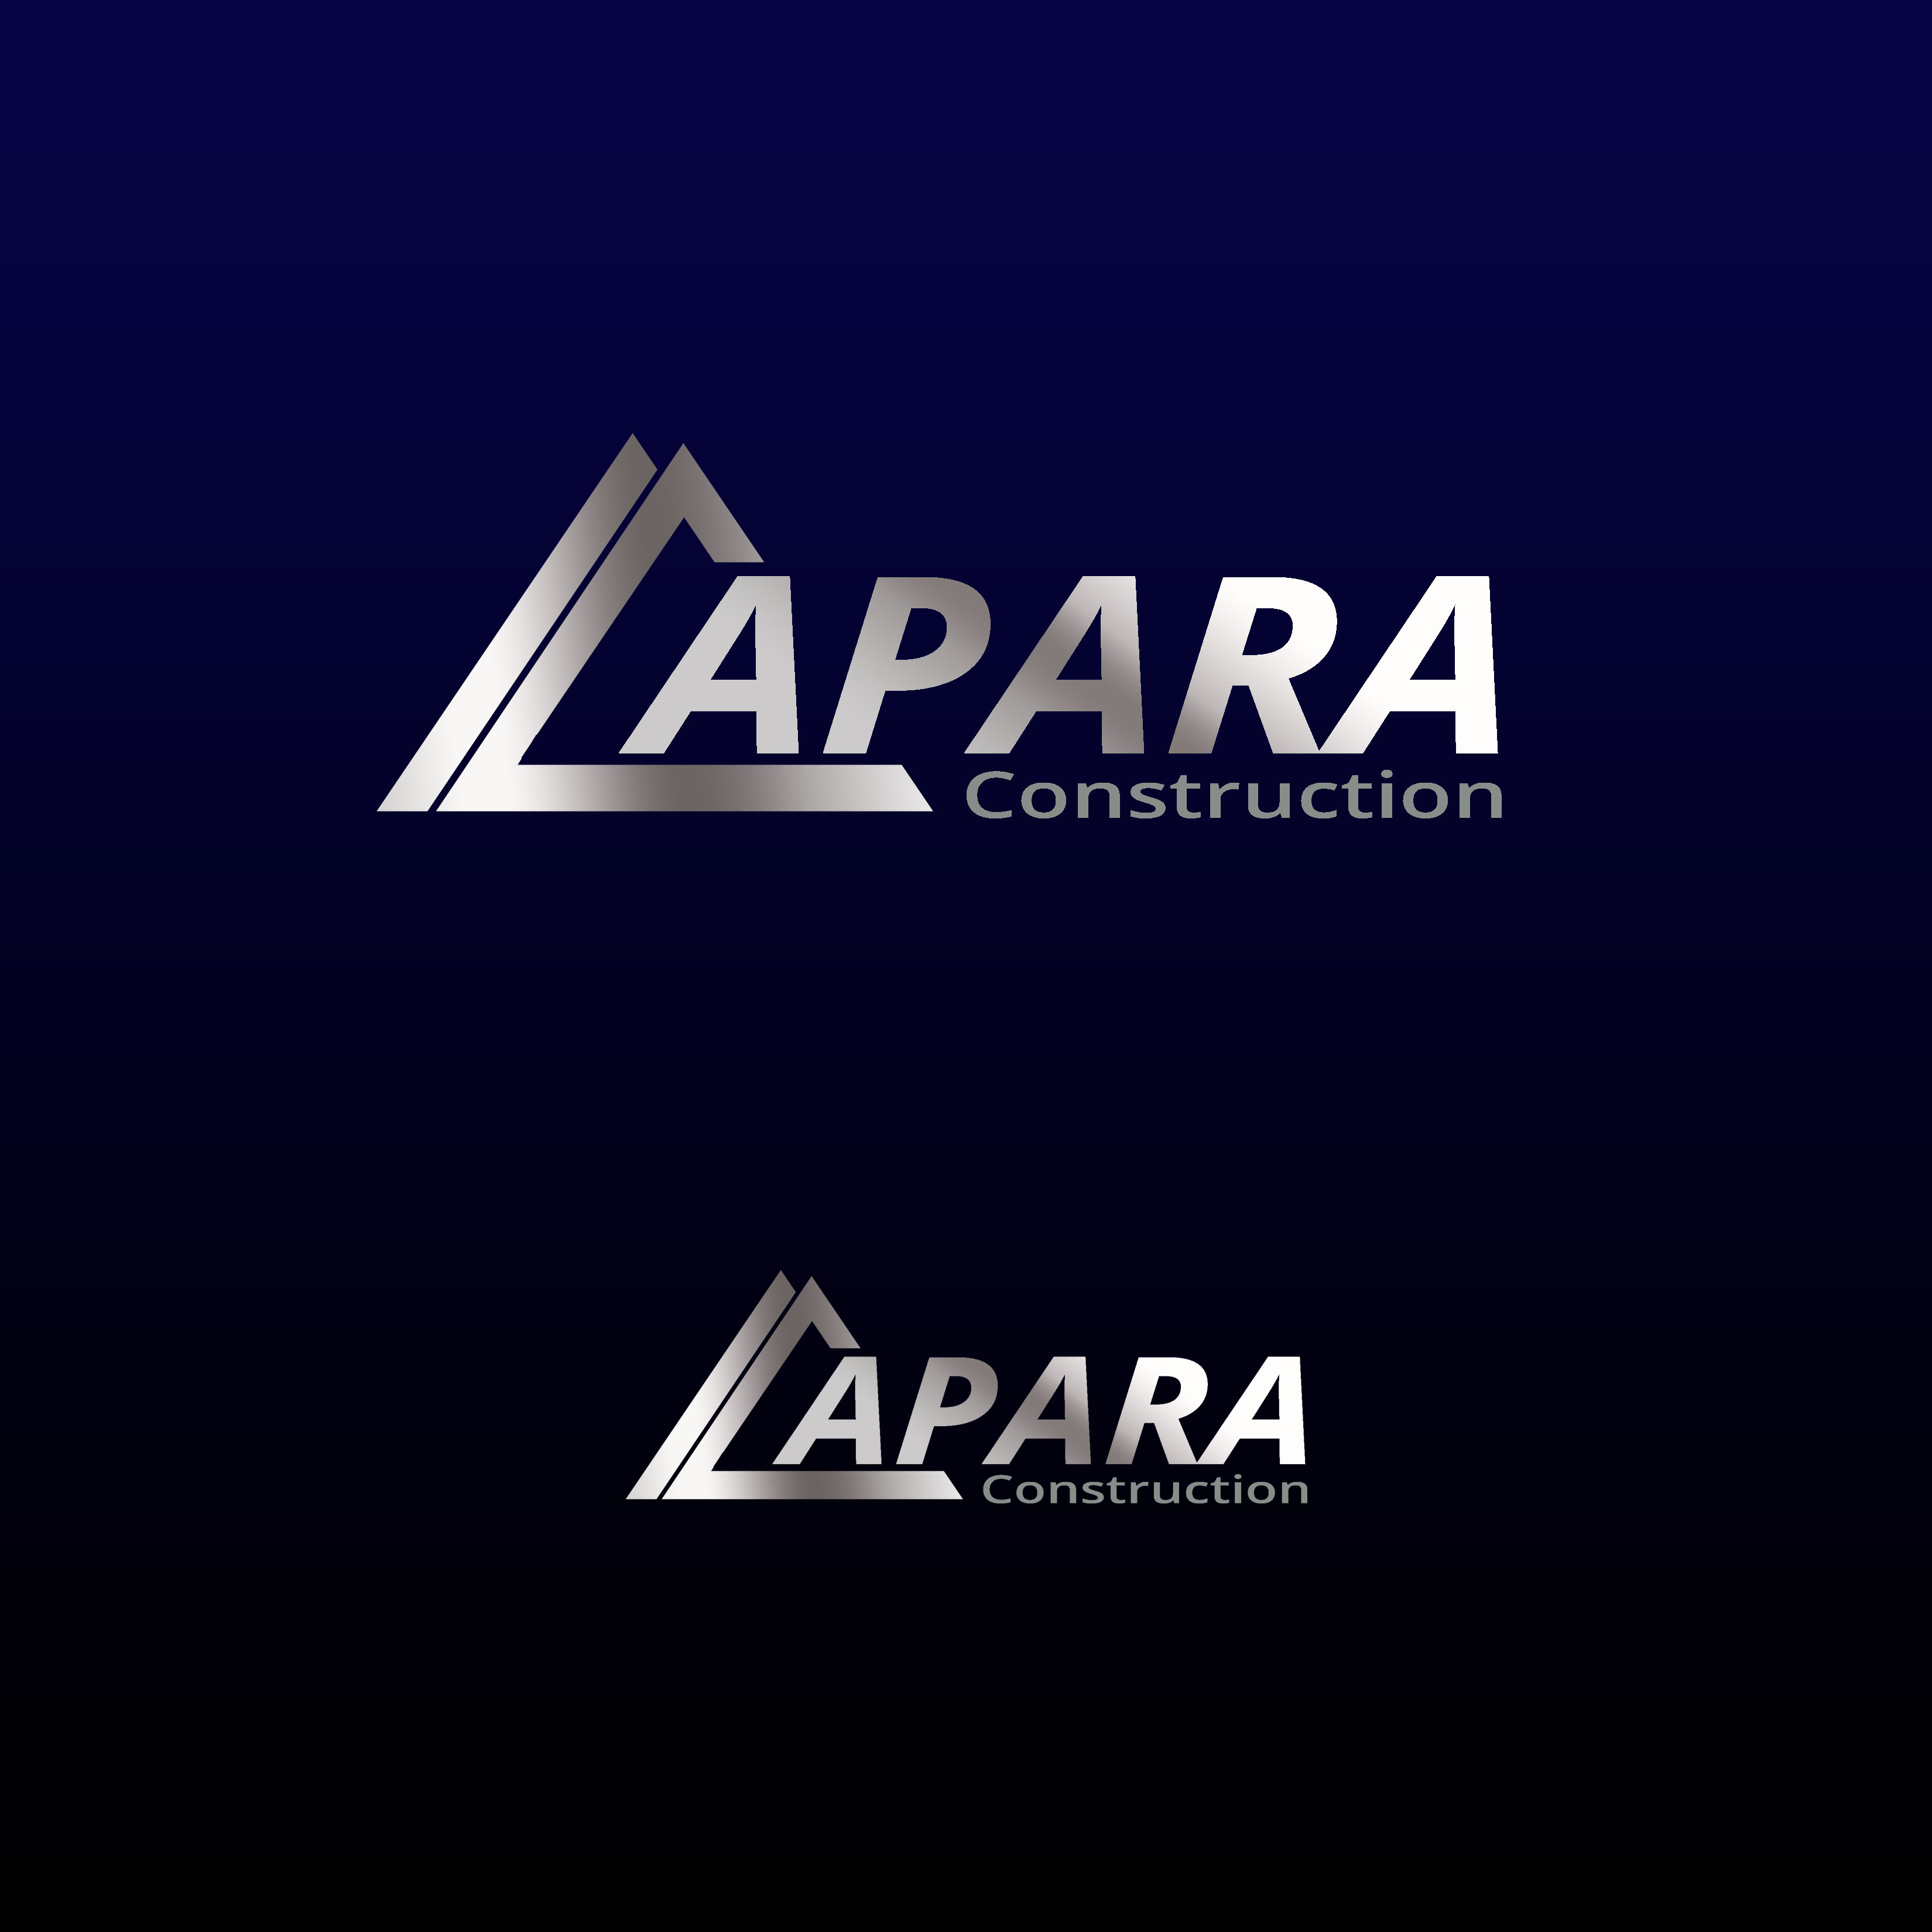 Logo Design by Allan Esclamado - Entry No. 163 in the Logo Design Contest Apara Construction Logo Design.